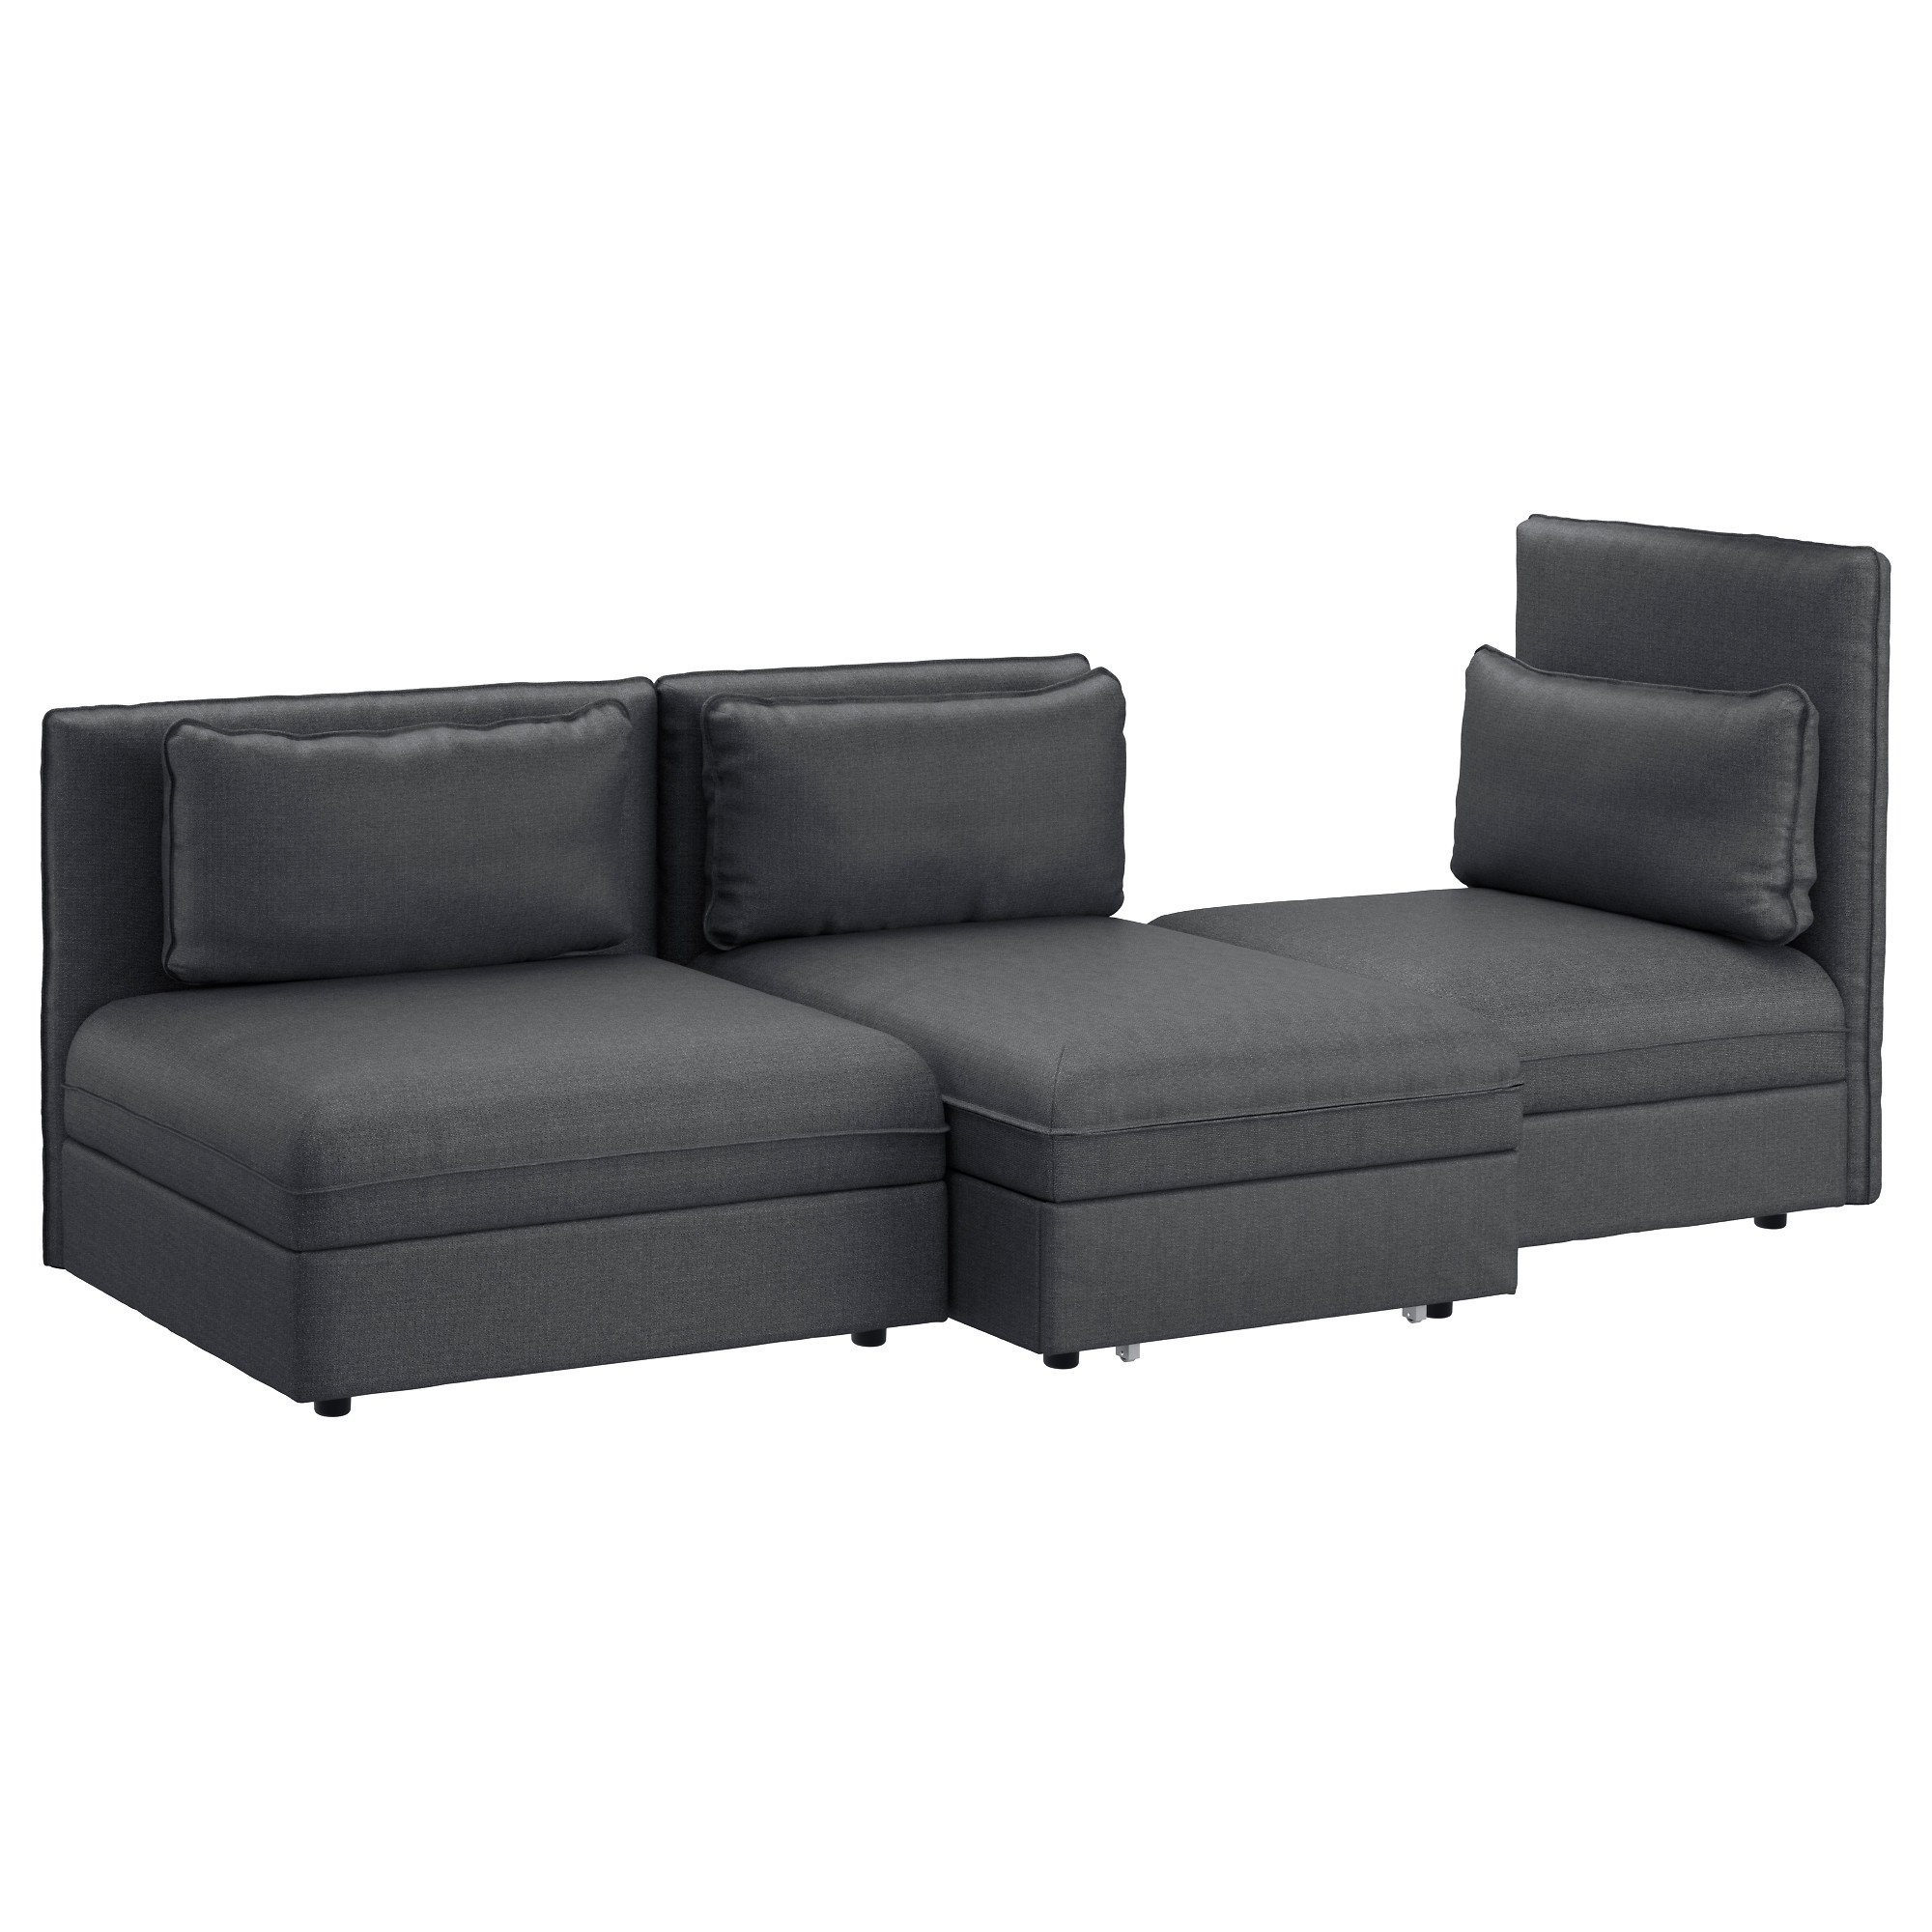 2018 Vallentuna Sleeper Sectional, 3 Seat – Hillared Green – Ikea Pertaining To Ikea Sofa Beds With Chaise (View 2 of 15)